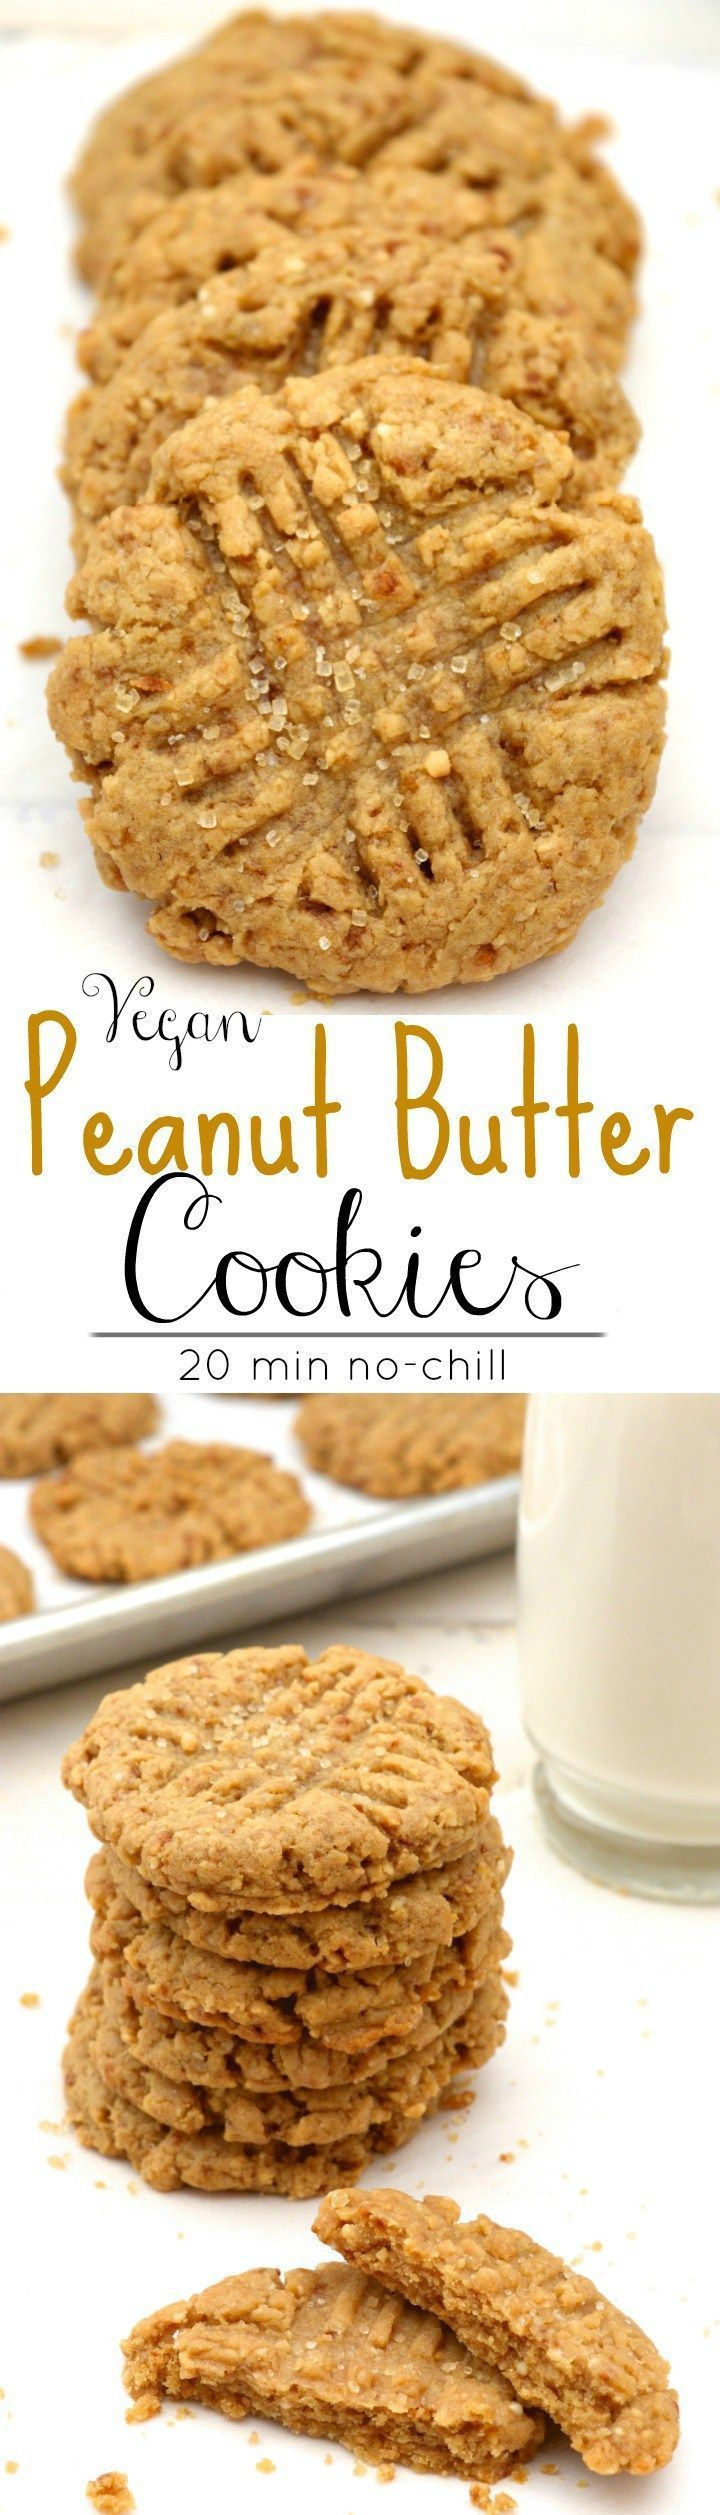 Vegan Peanut Butter Cookies are great for holiday baking! These soft irresistible cookies are bursting with peanut butter flavor. A classic cookie that will disappear fast! Plus theyre egg free, dairy free, refined-sugar free and made with fresh ground p